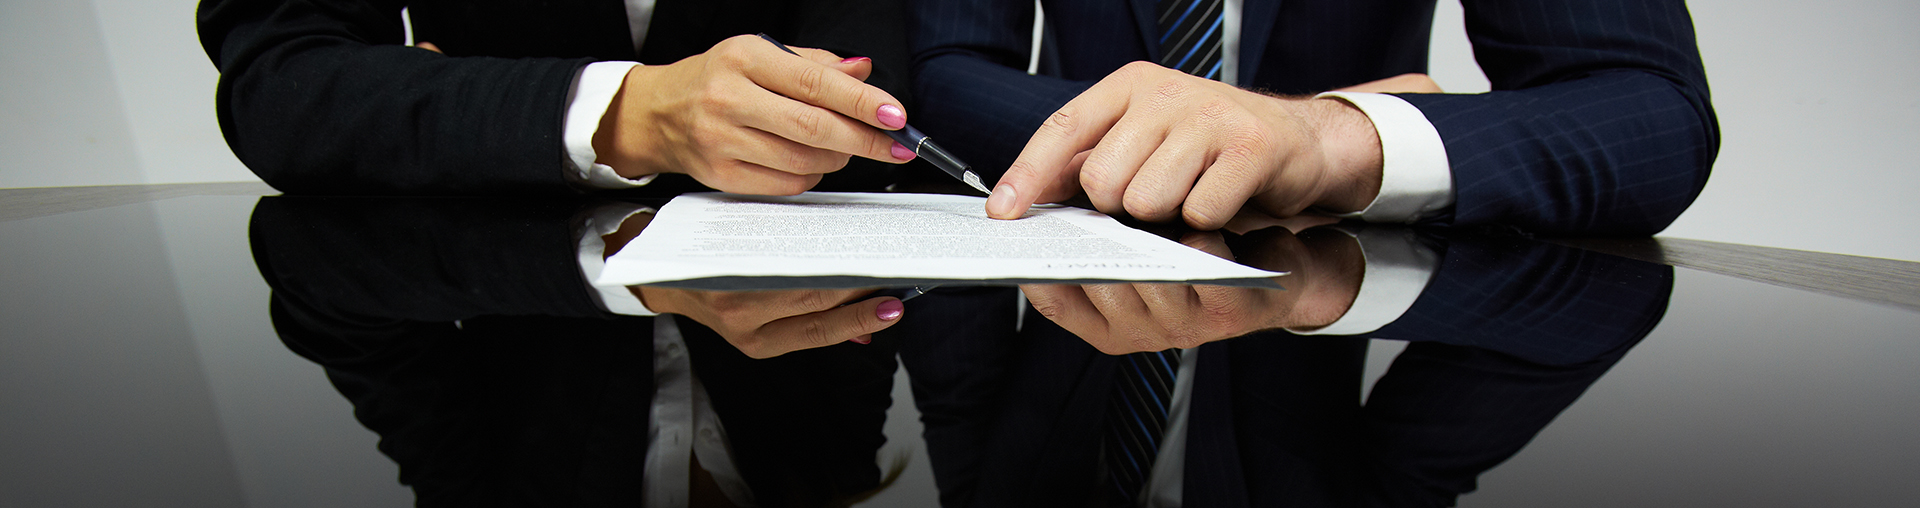 Image of human hands during reading contract